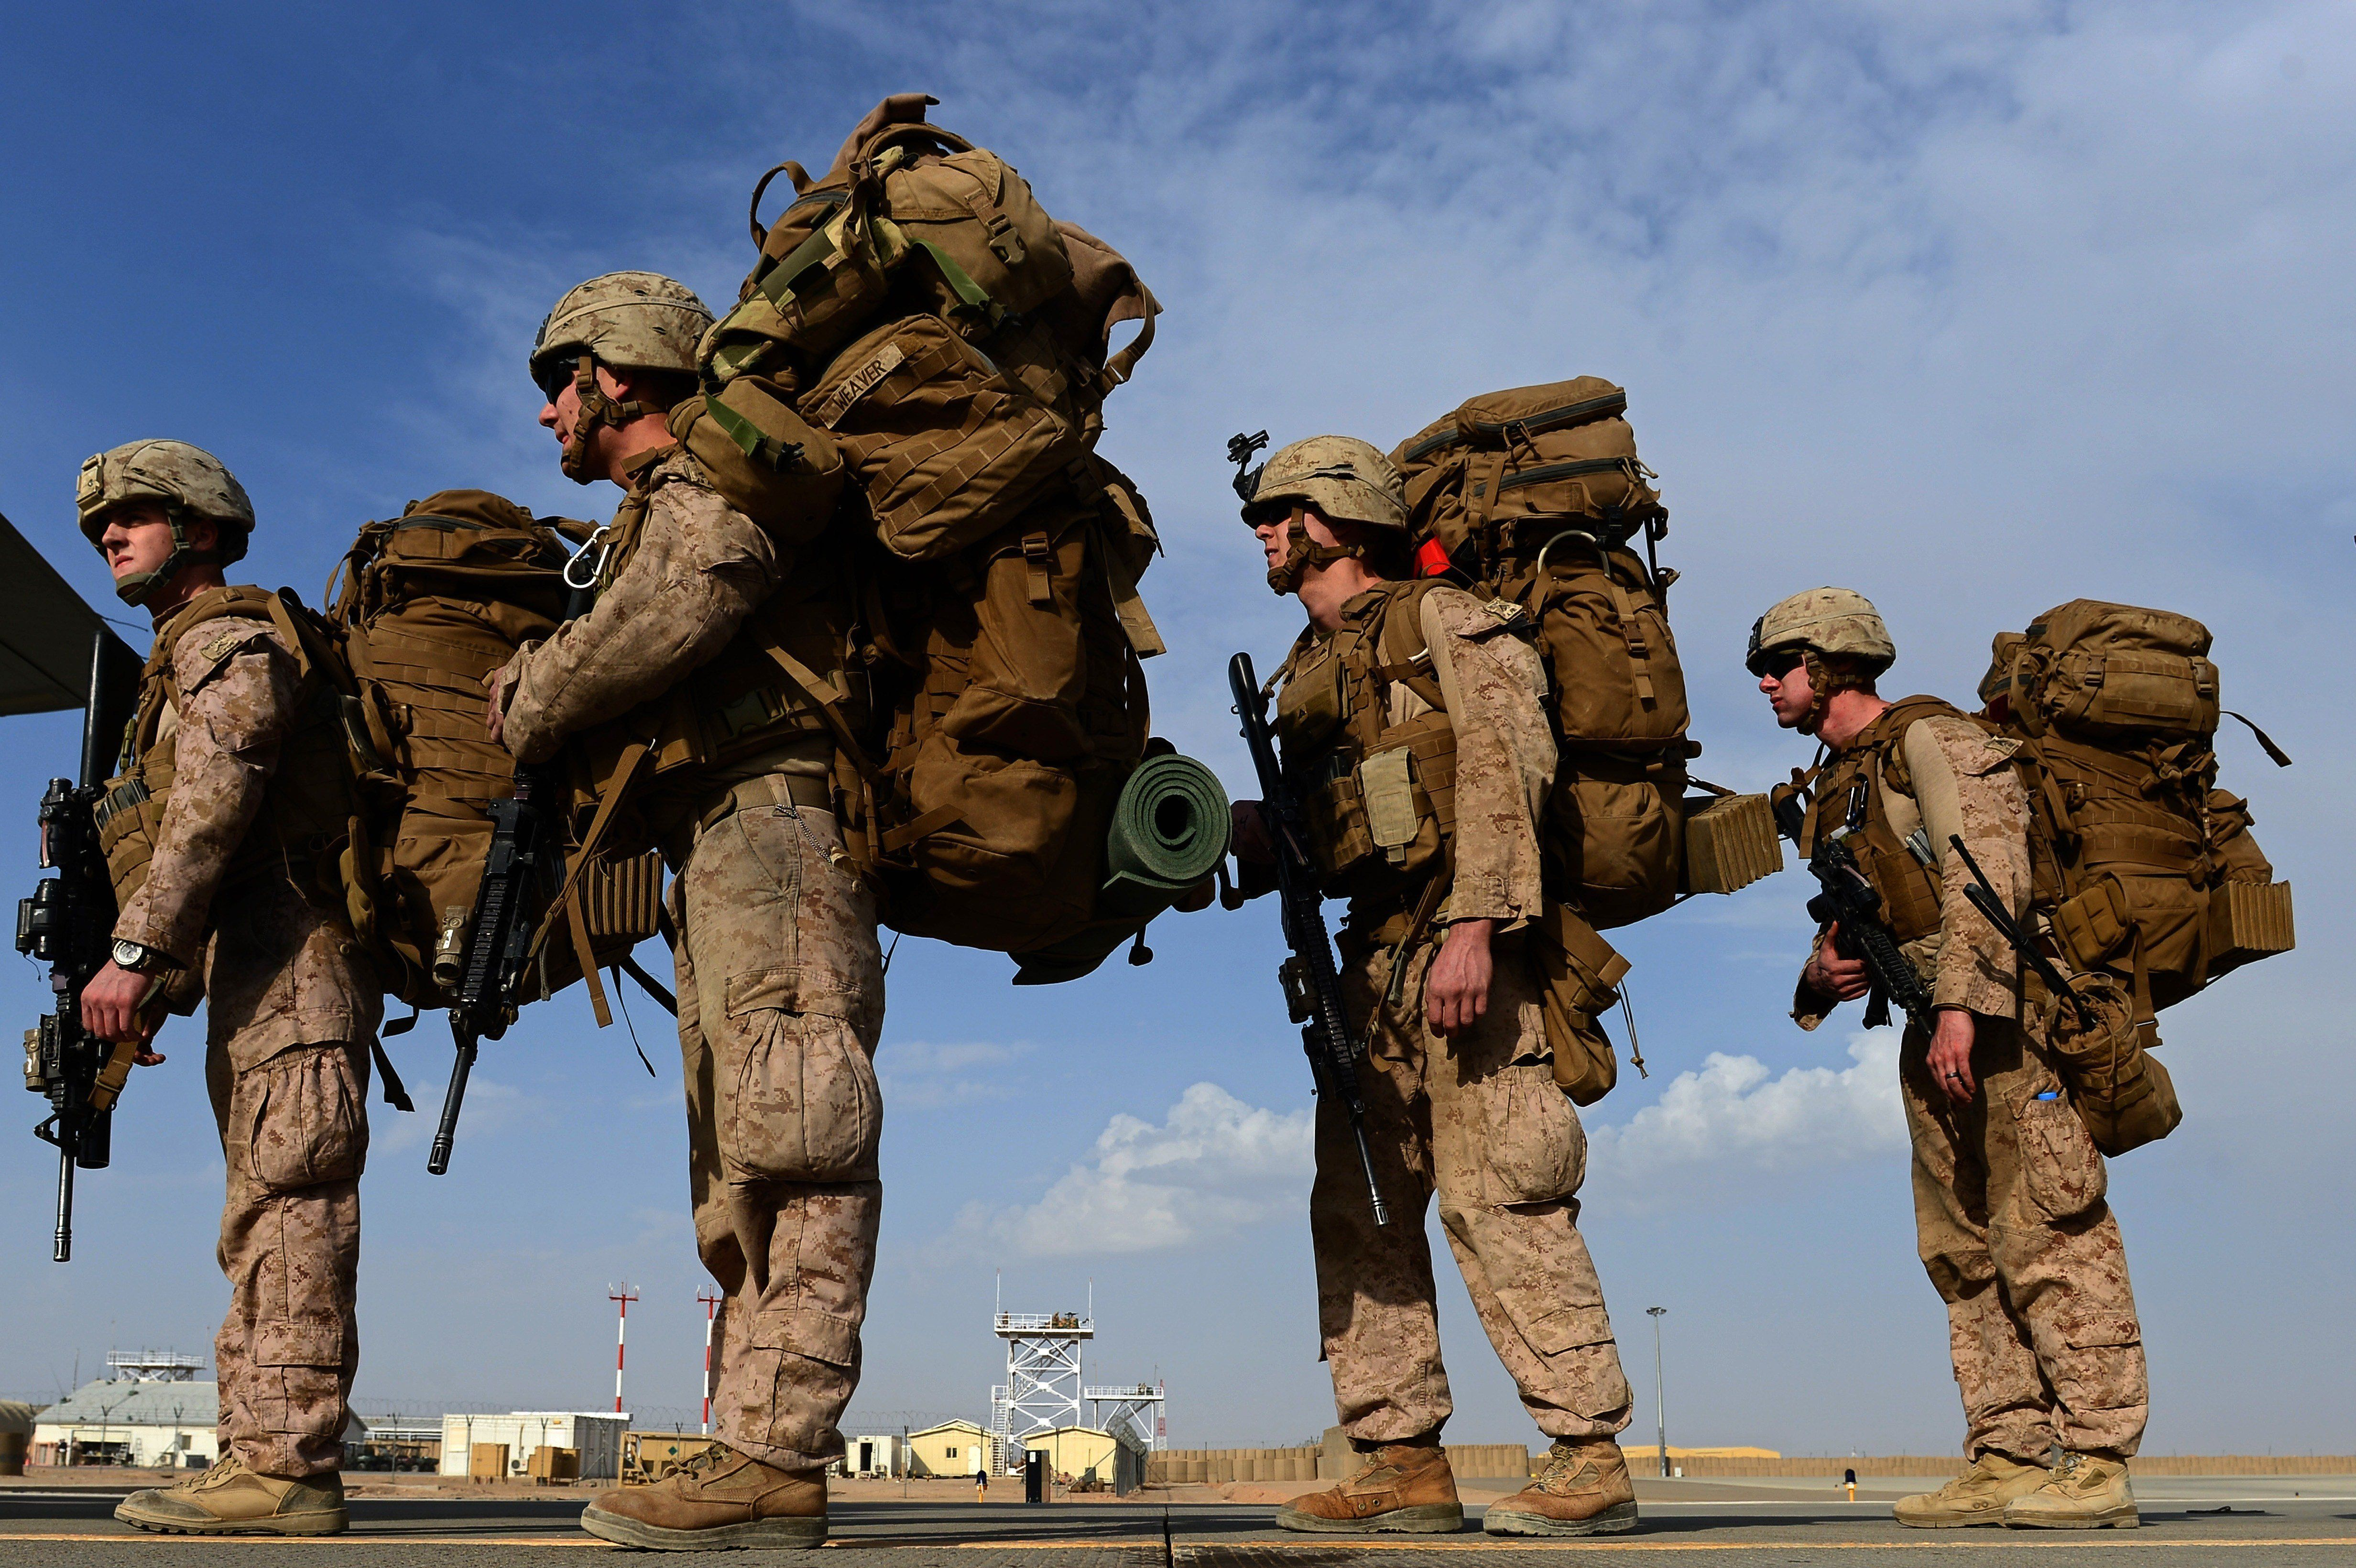 Marines individually carry heavy loads as they wait to board an aircraft in Afghanistan.